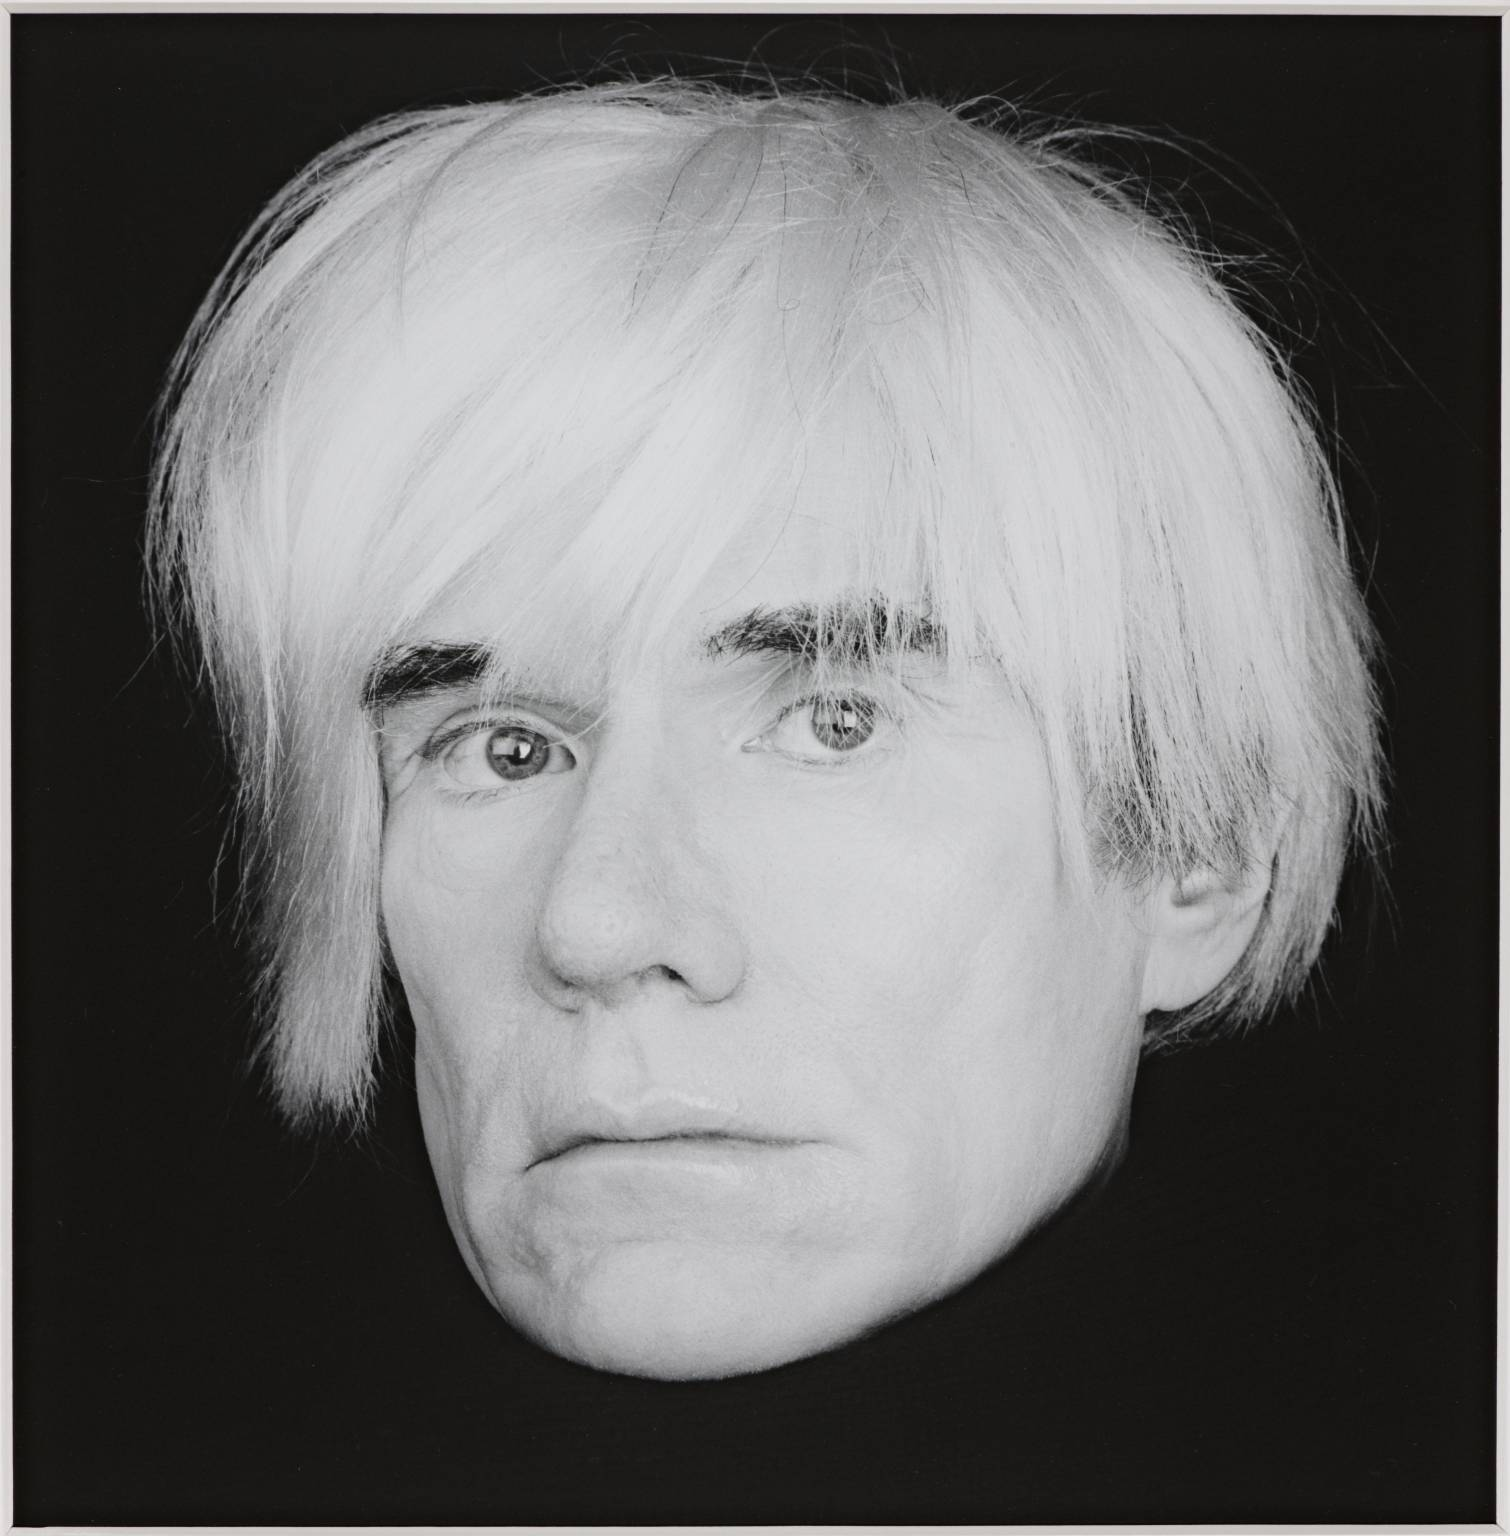 Andy Warhol 1986 Robert Mapplethorpe 1946-1989 ARTIST ROOMS Acquired jointly with the National Galleries of Scotland through The d'Offay Donation with assistance from the National Heritage Memorial Fund and the Art Fund 2008 http://www.tate.org.uk/art/work/AR00149